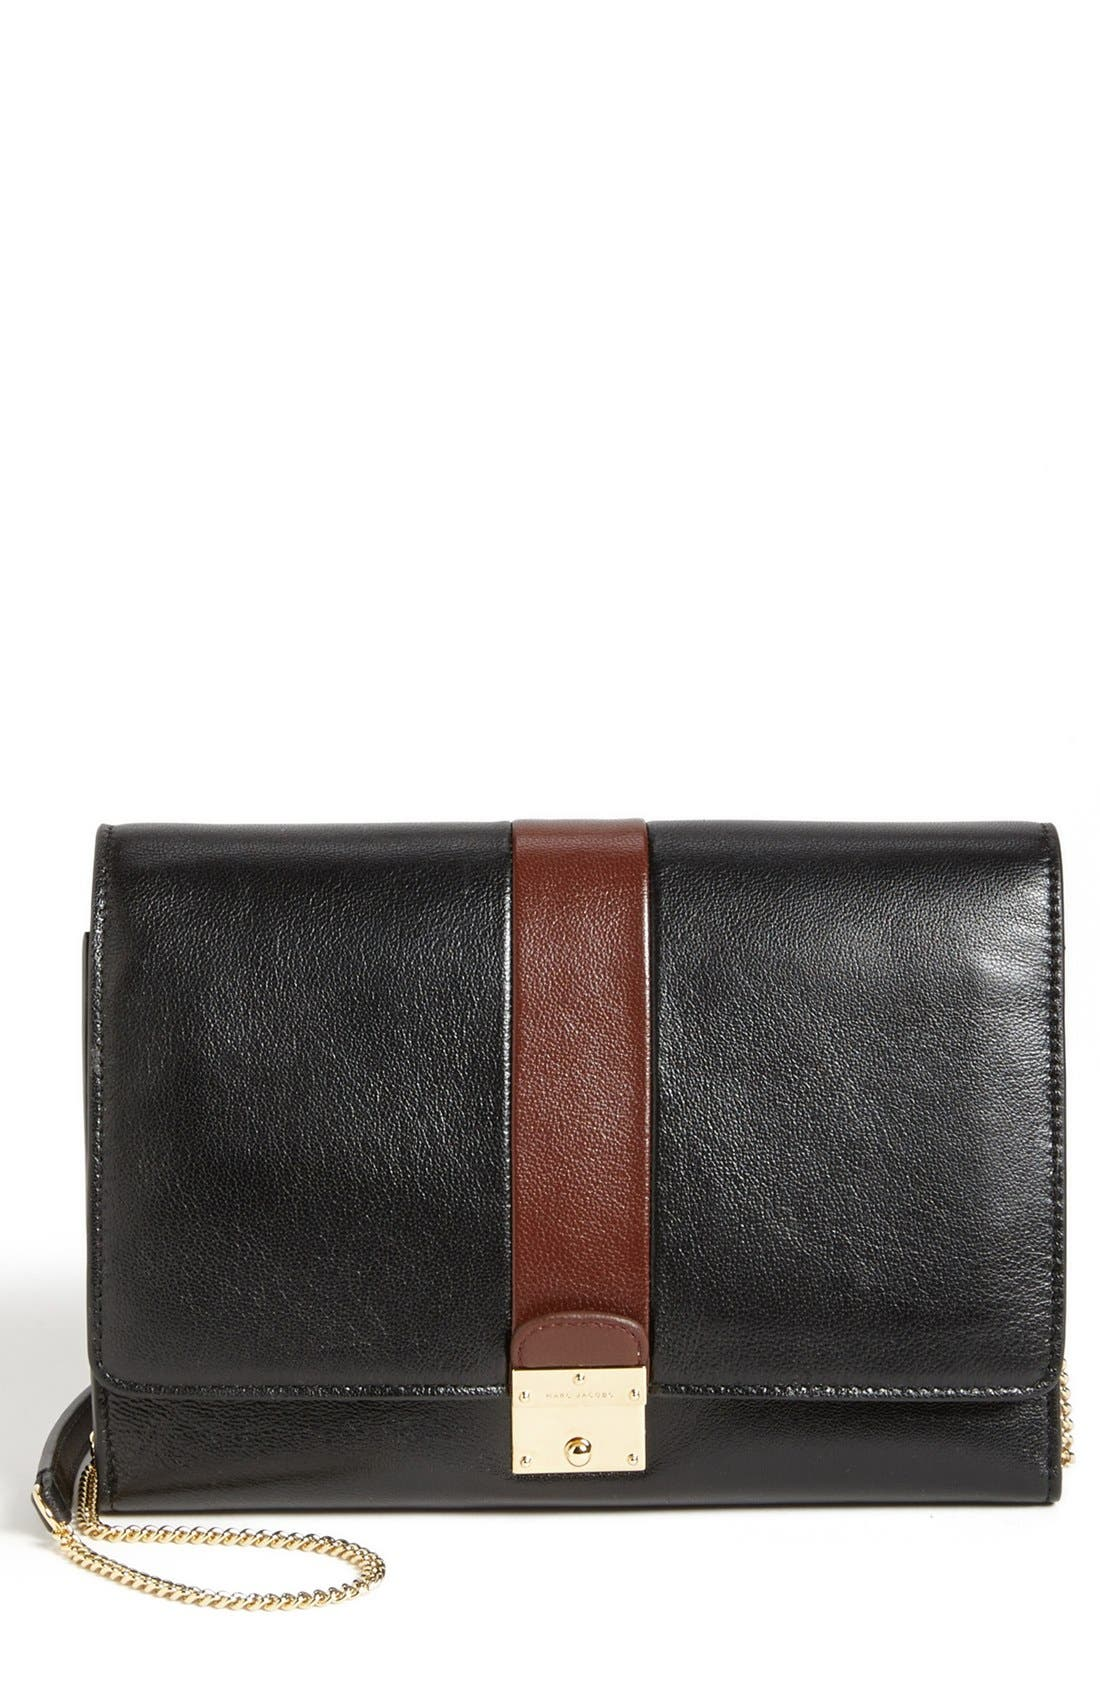 MARC JACOBS 'Checkers' All-In-One Leather Crossbody Bag, Main, color, 002